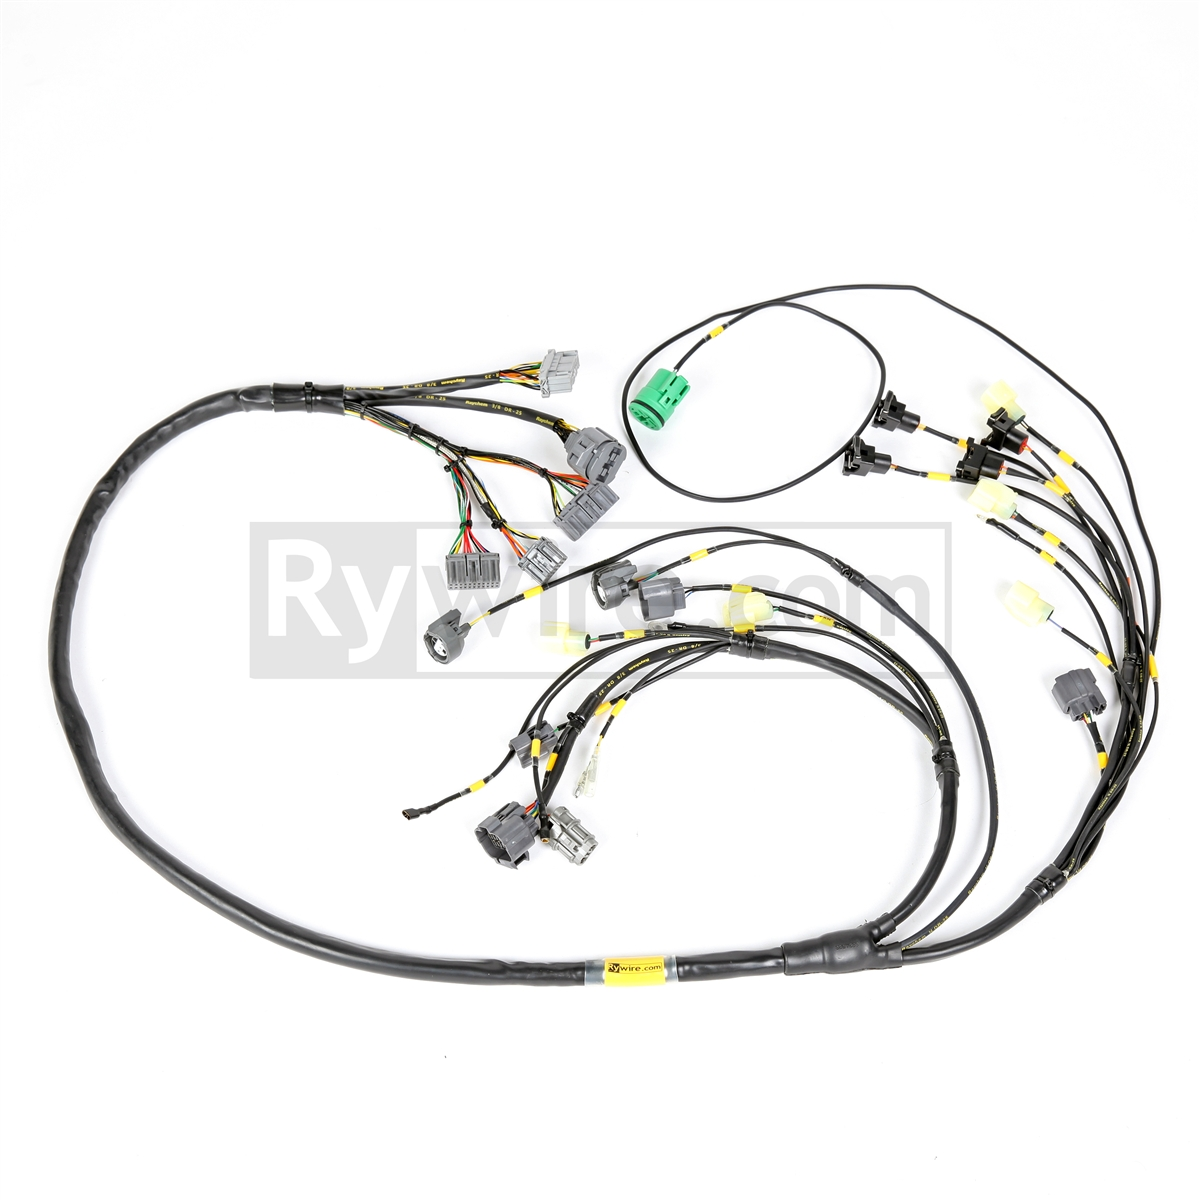 H1 Milspec 2?1402582650 rywire com mil spec f series (f20b) & h series (h22) harness h22 wiring harness at eliteediting.co